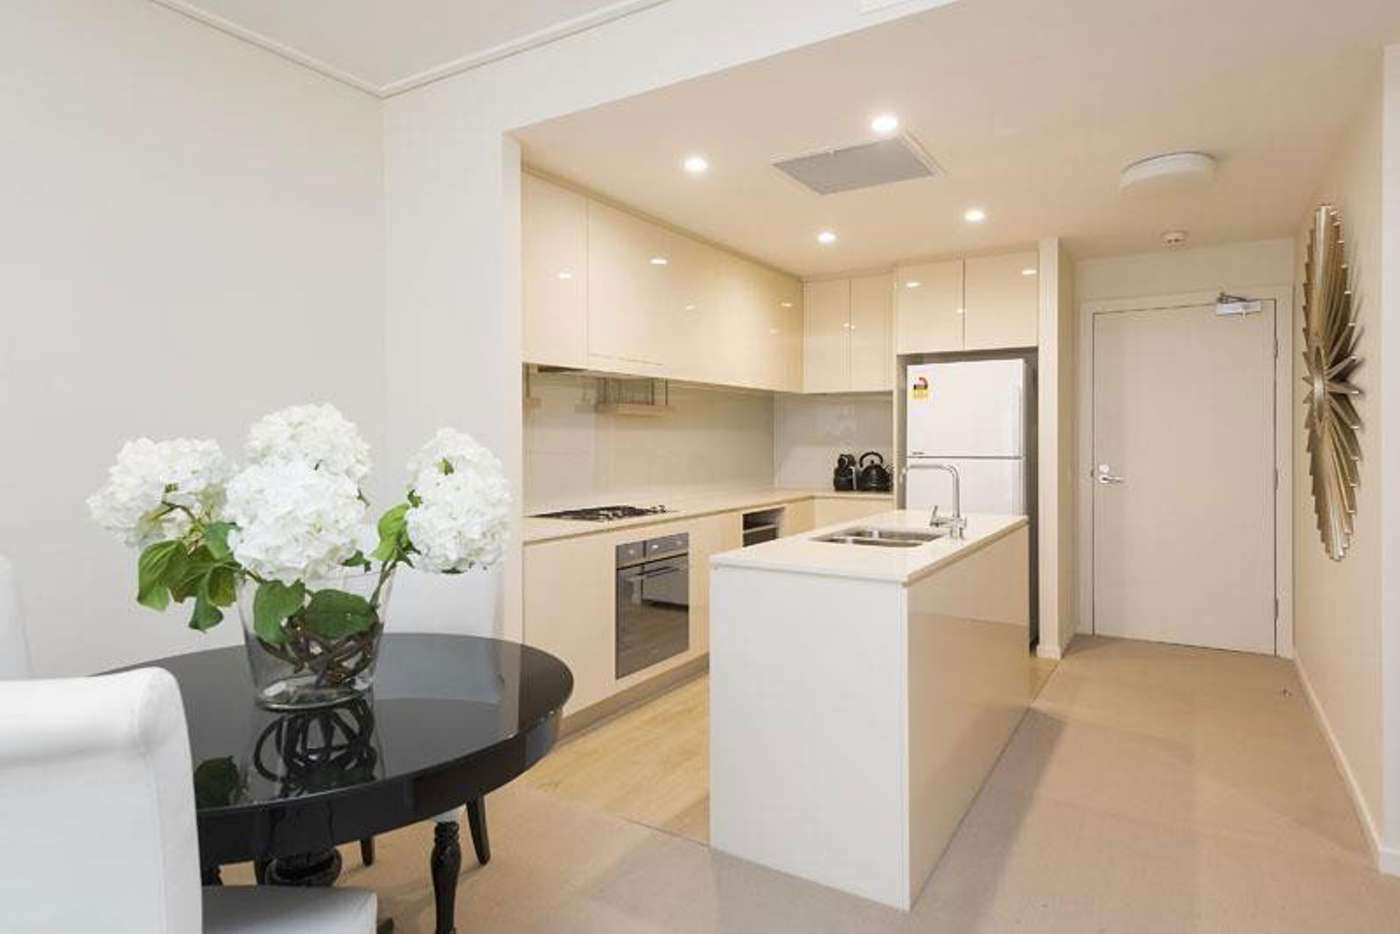 Main view of Homely apartment listing, 1402/1 Nield Avenue, Greenwich NSW 2065